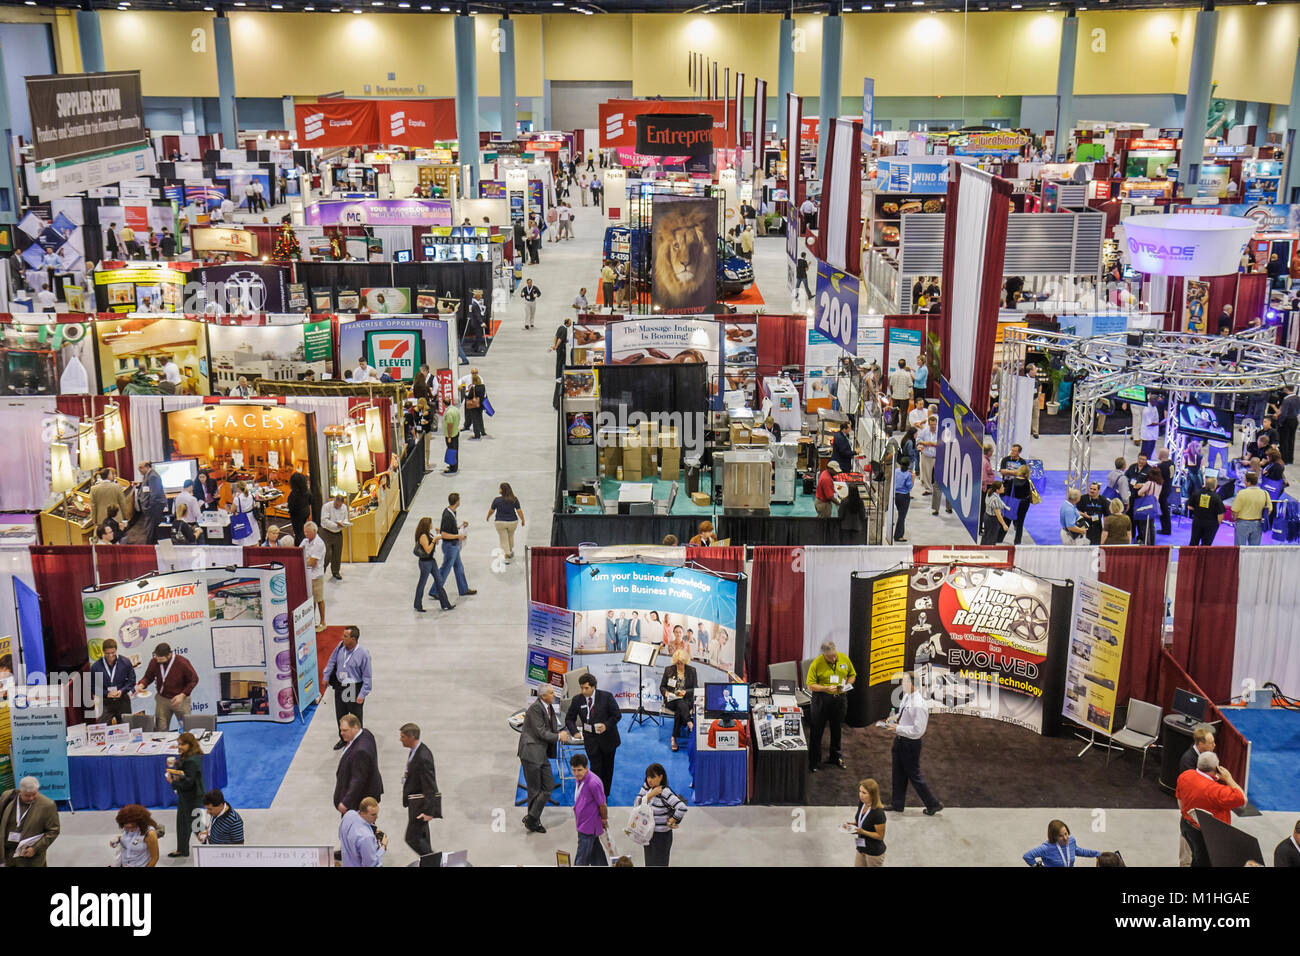 Our Exhibitors | Franchise Canada Show in Toronto